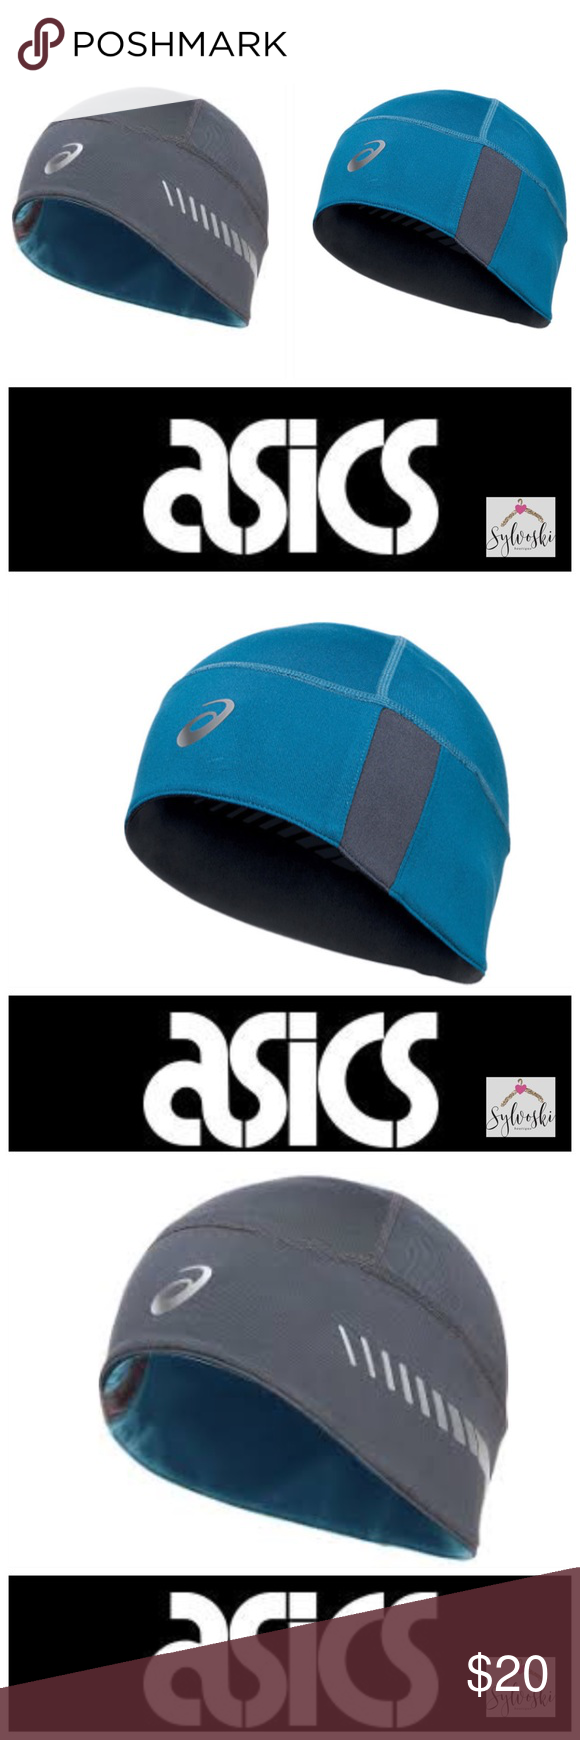 f1612777ab6 🆕Thermopolis LT 2-N-1 Beanie Unisex Running Hats ASICS exclusive  Thermopolis® LT gives this beanie soft comfort featuring reversible  versatility.